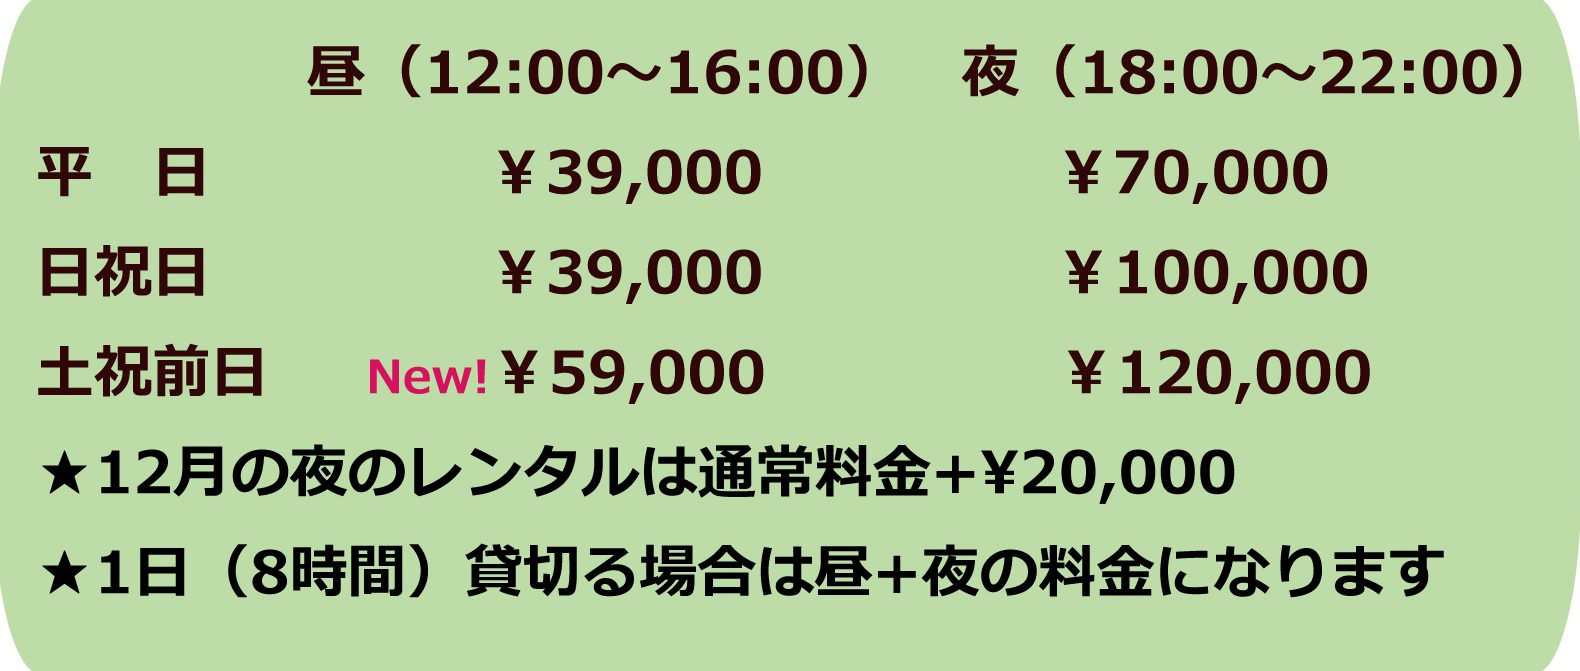 data201301schedule_omote